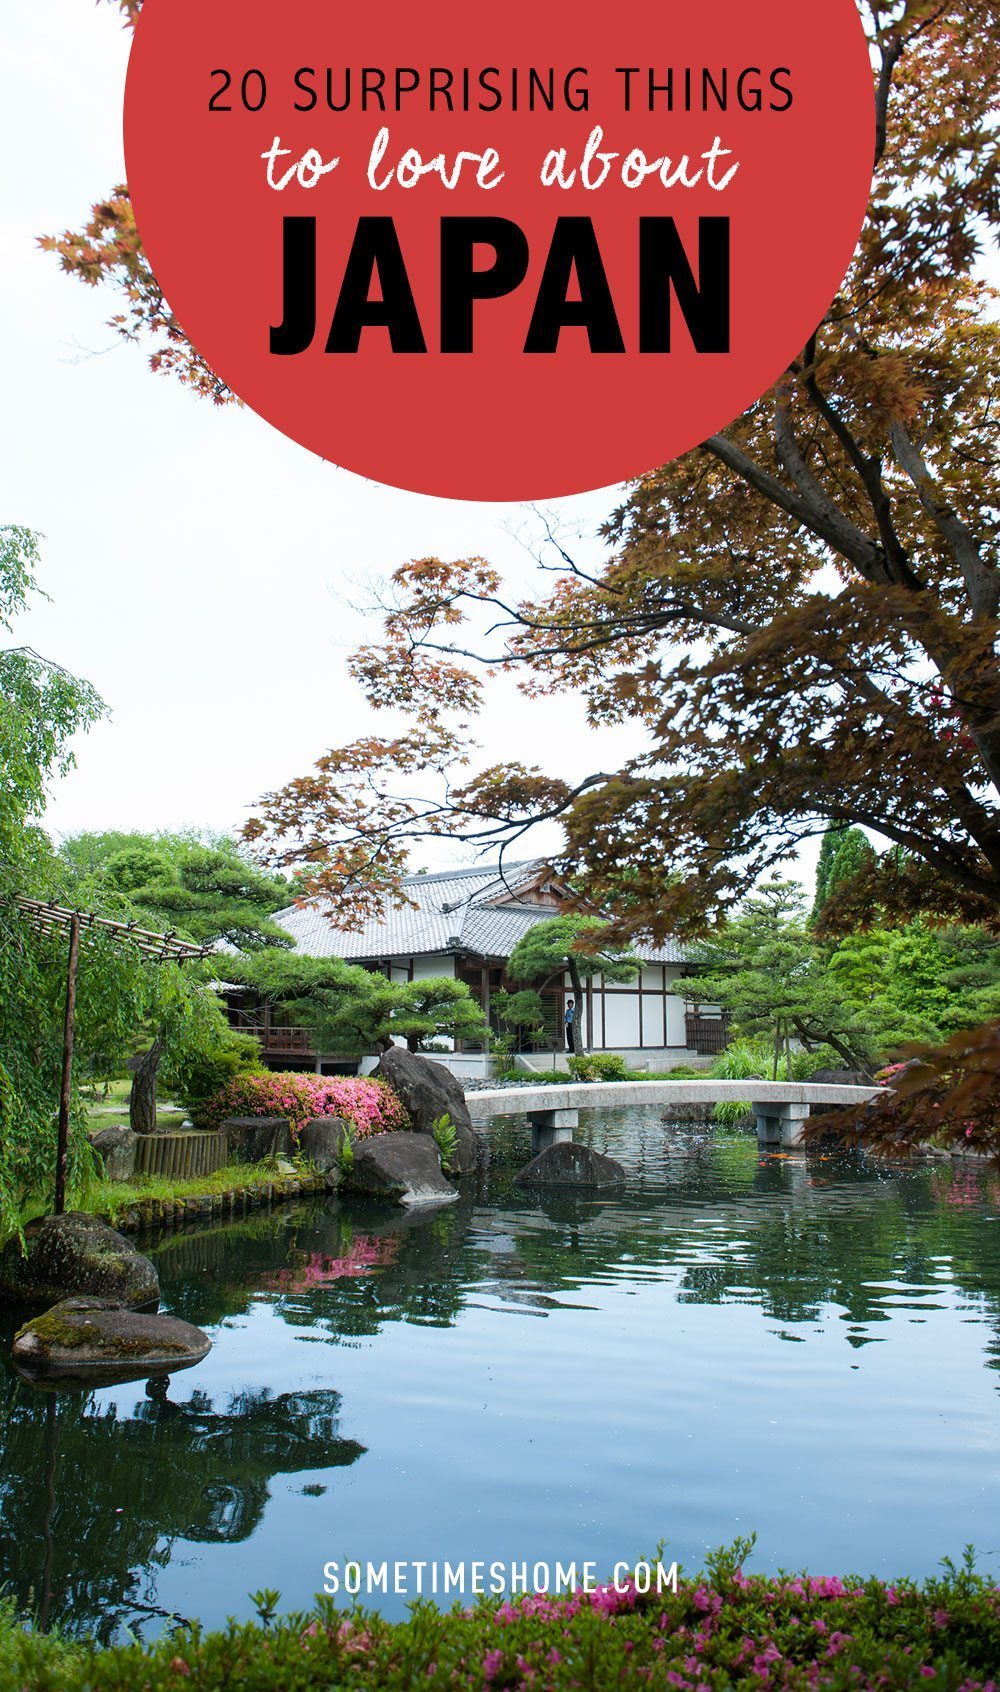 20 Surprising Things to Love About Japan with photos on Sometimes Home travel website and blog.